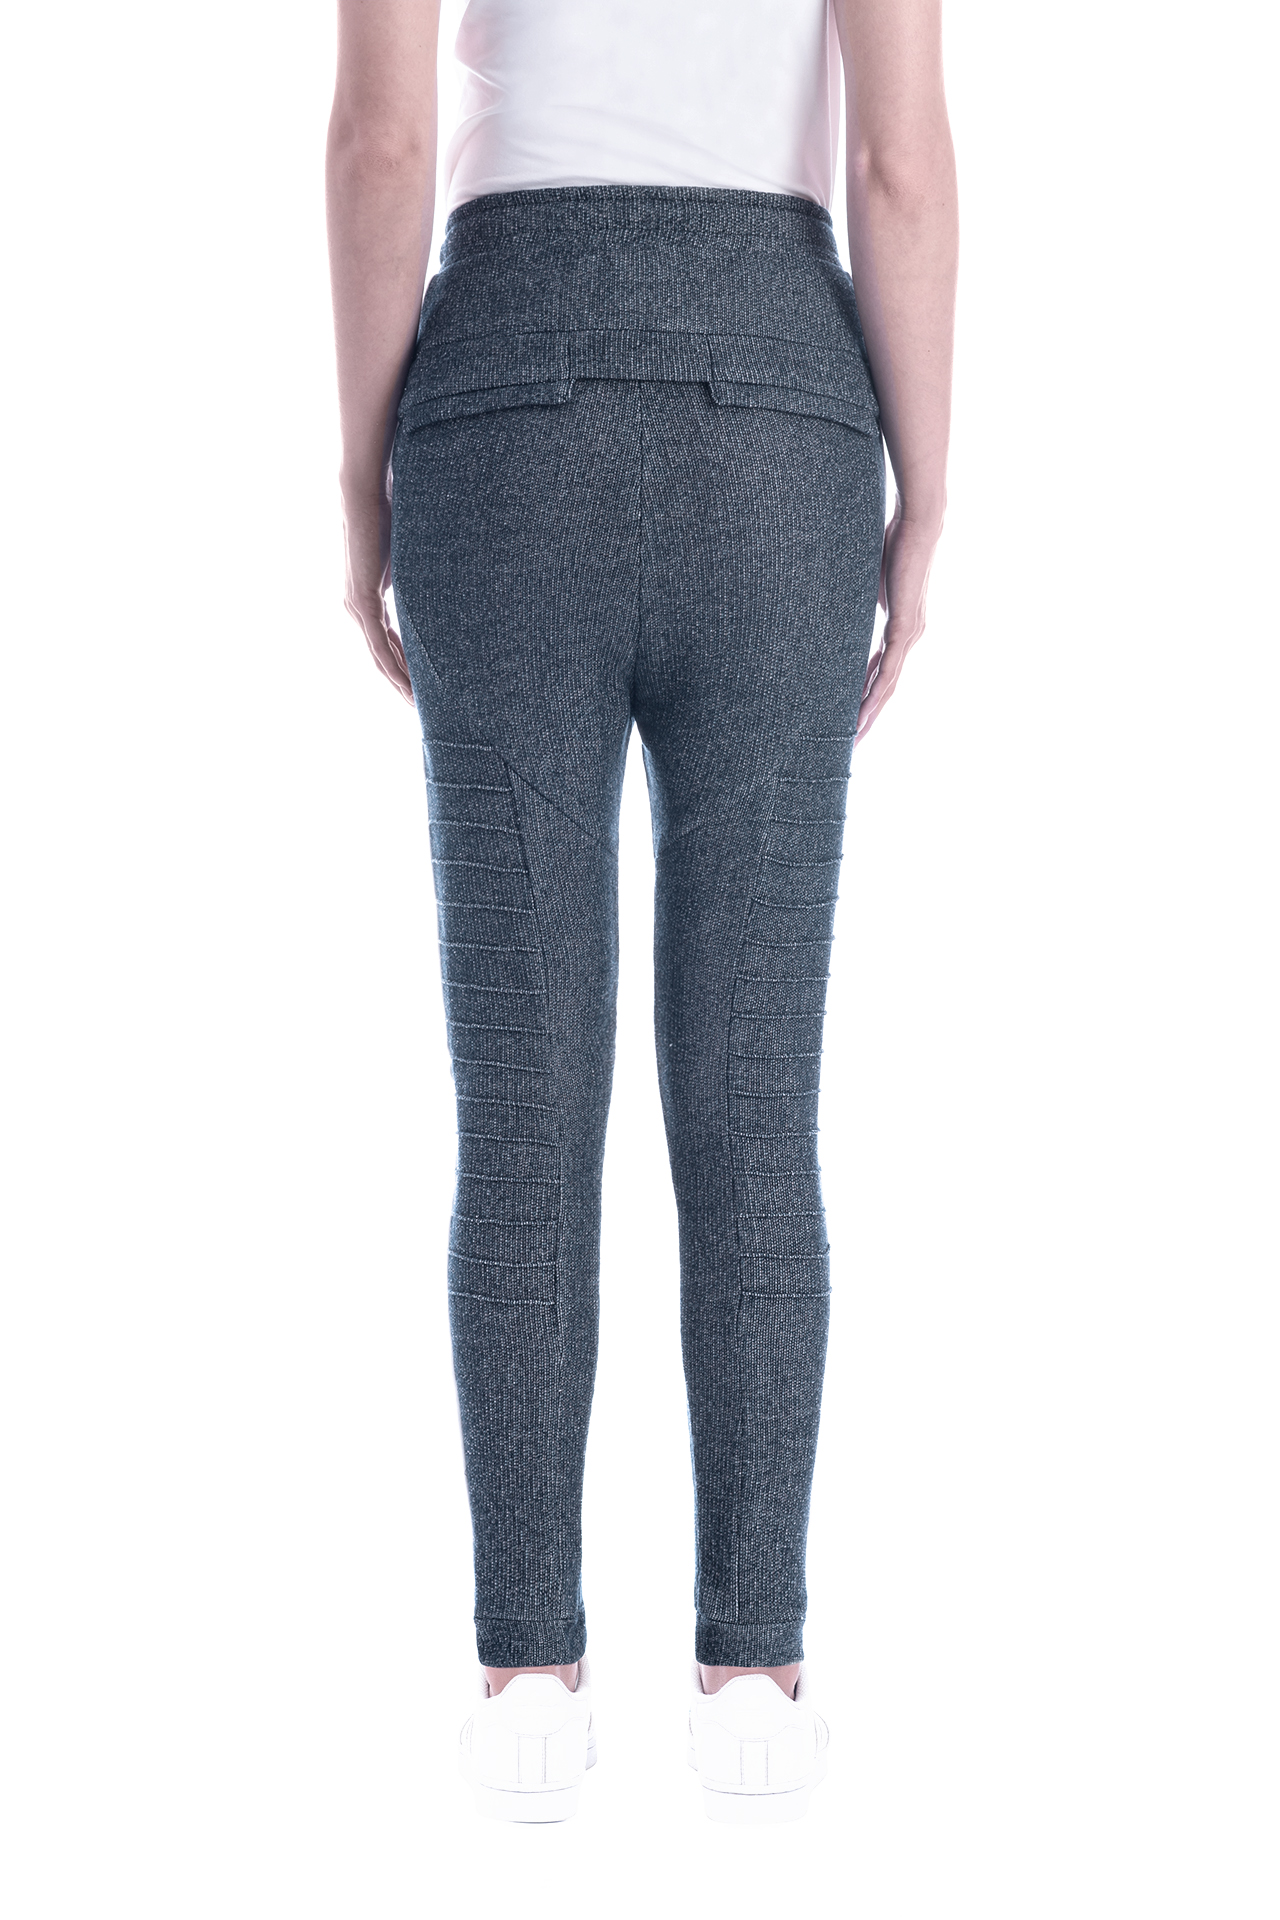 FRENCH TERRY PANT BLUE 3